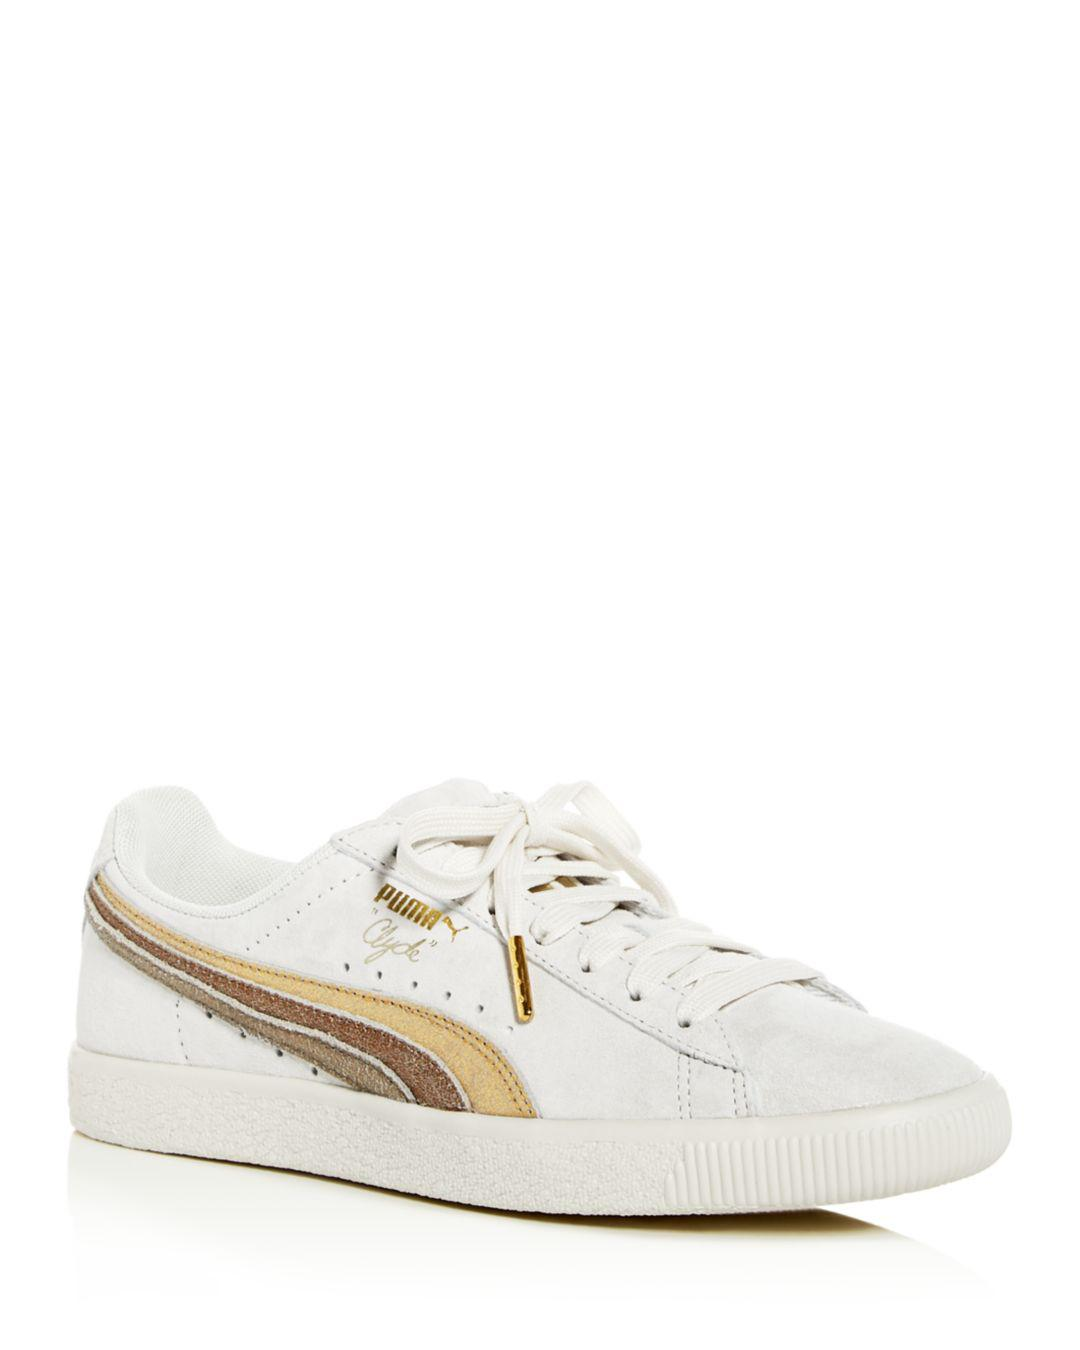 Lyst - PUMA Women s Clyde Low-top Sneakers in White 3a2309d20